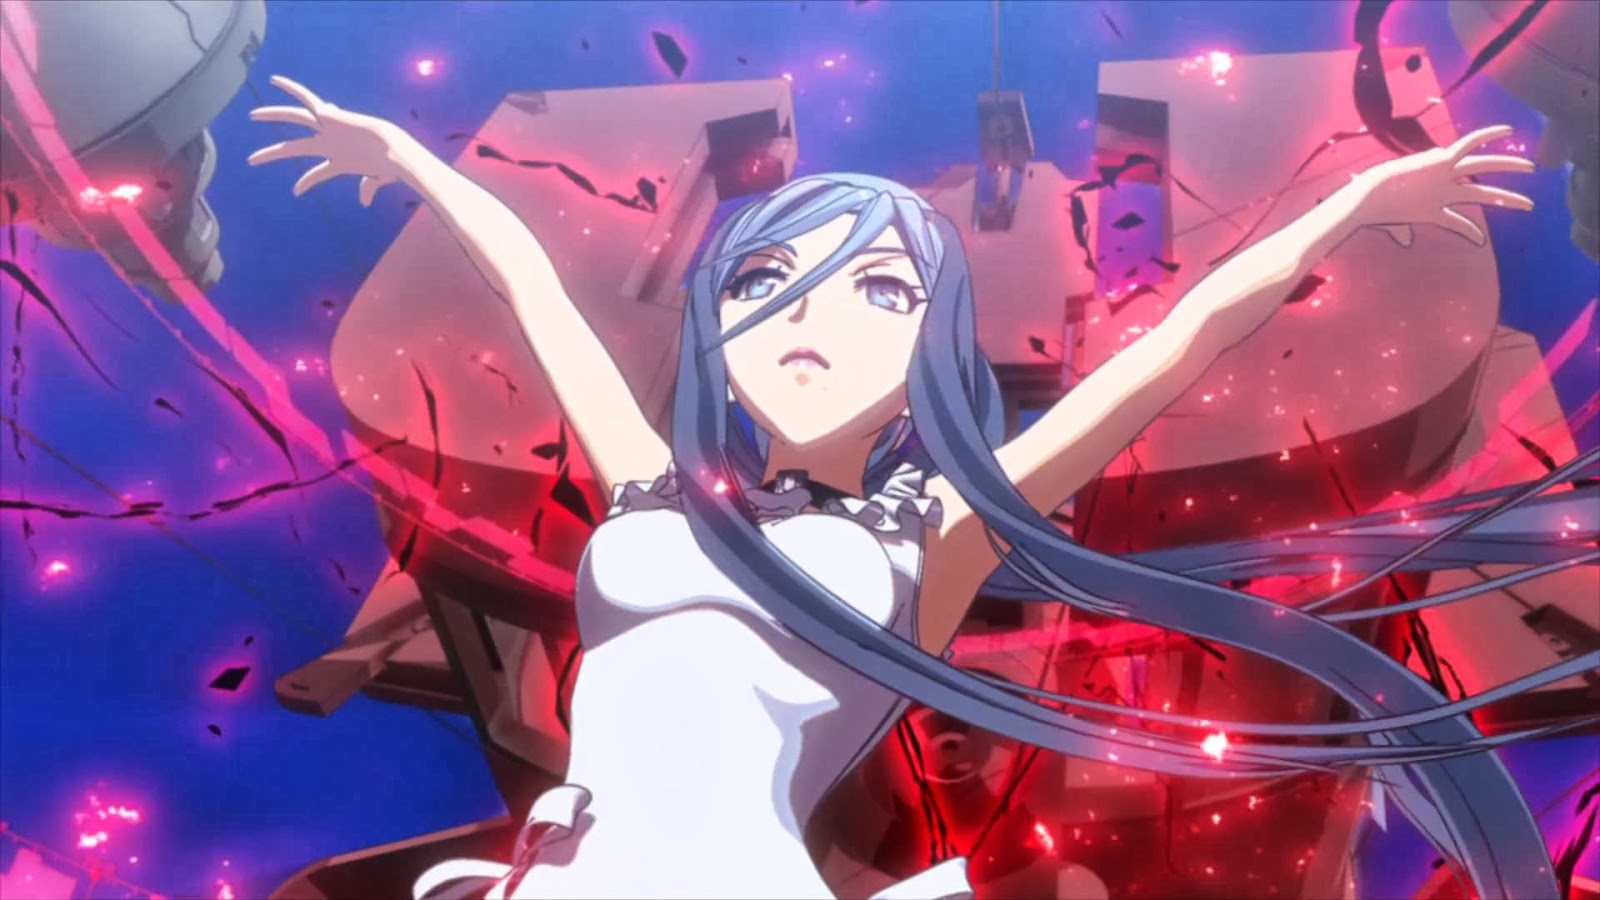 Hanners Anime Blog Arpeggio Of Blue Steel Ars Nova Episode 2